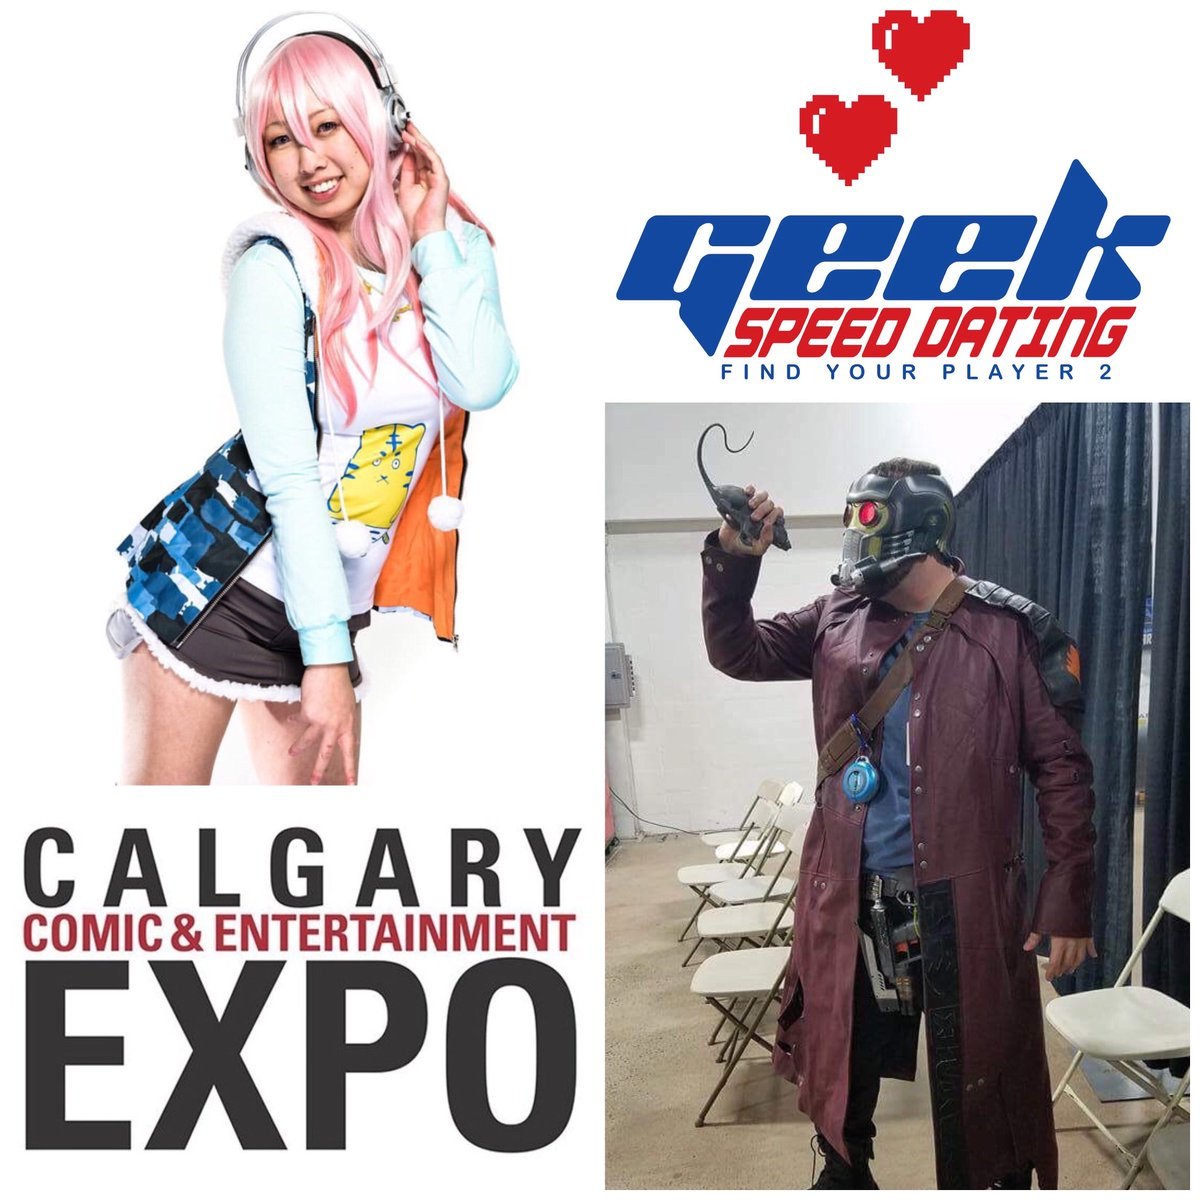 calgary expo speed dating seznamovací agentura preston